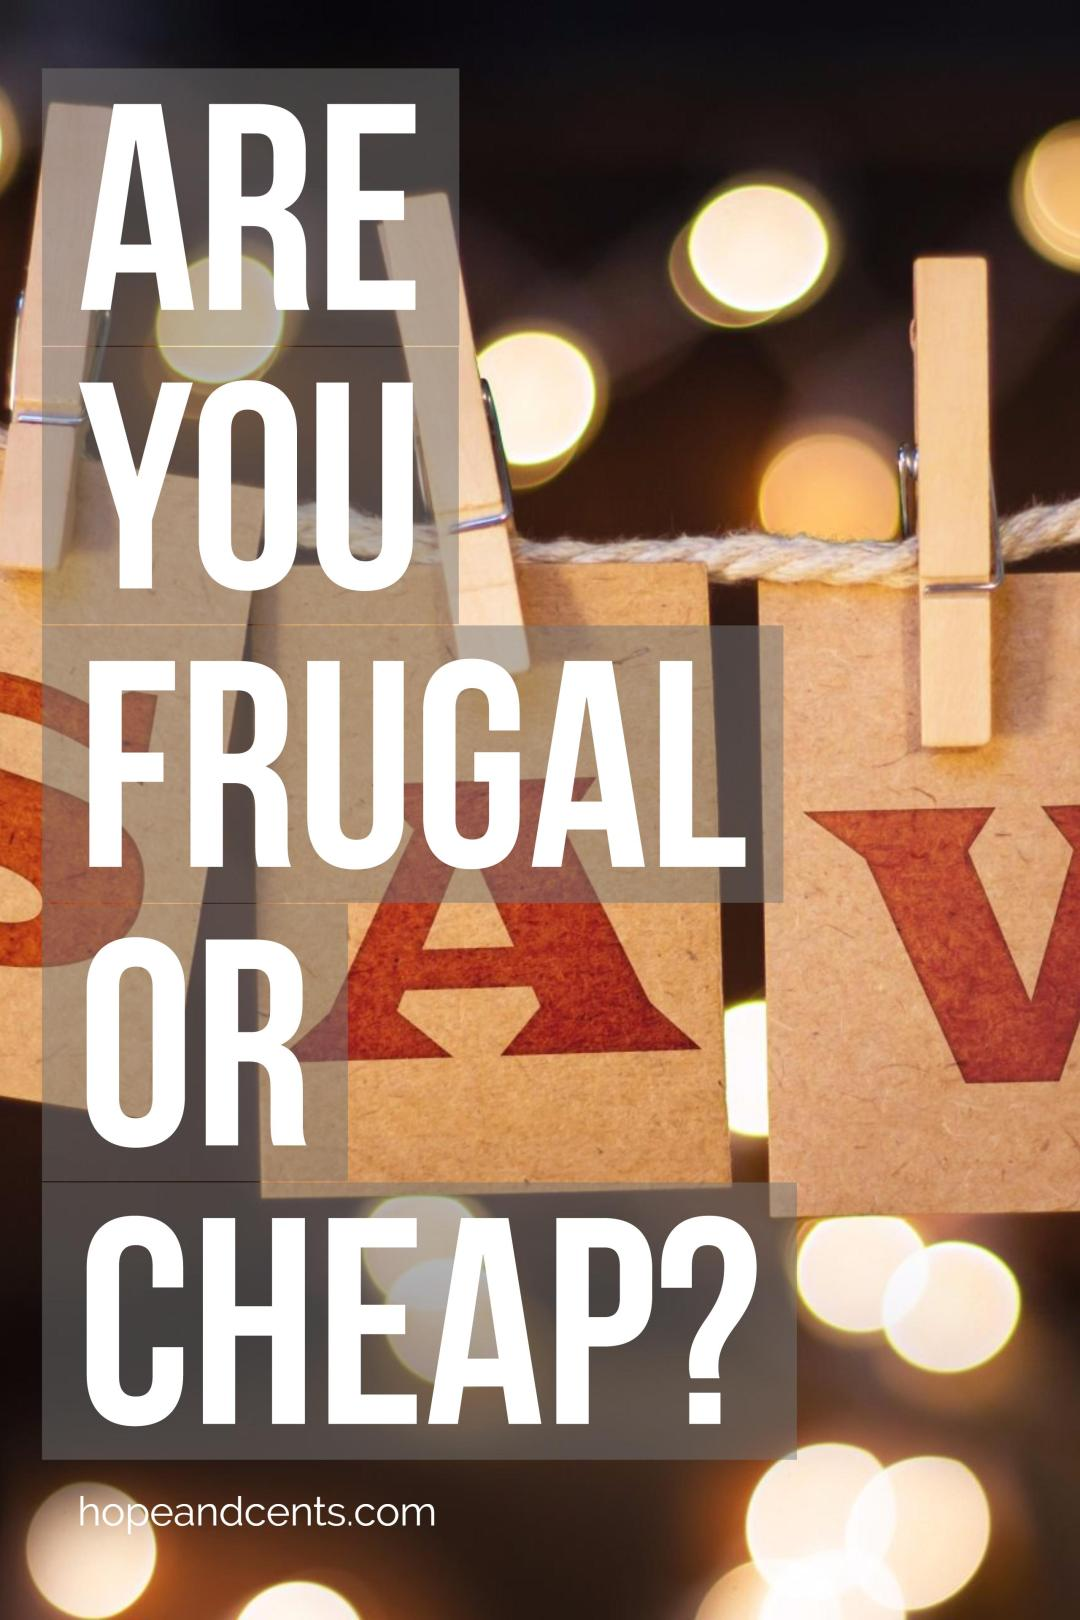 Are you frugal or cheap? There's a difference between the two. Take this quiz to find out.